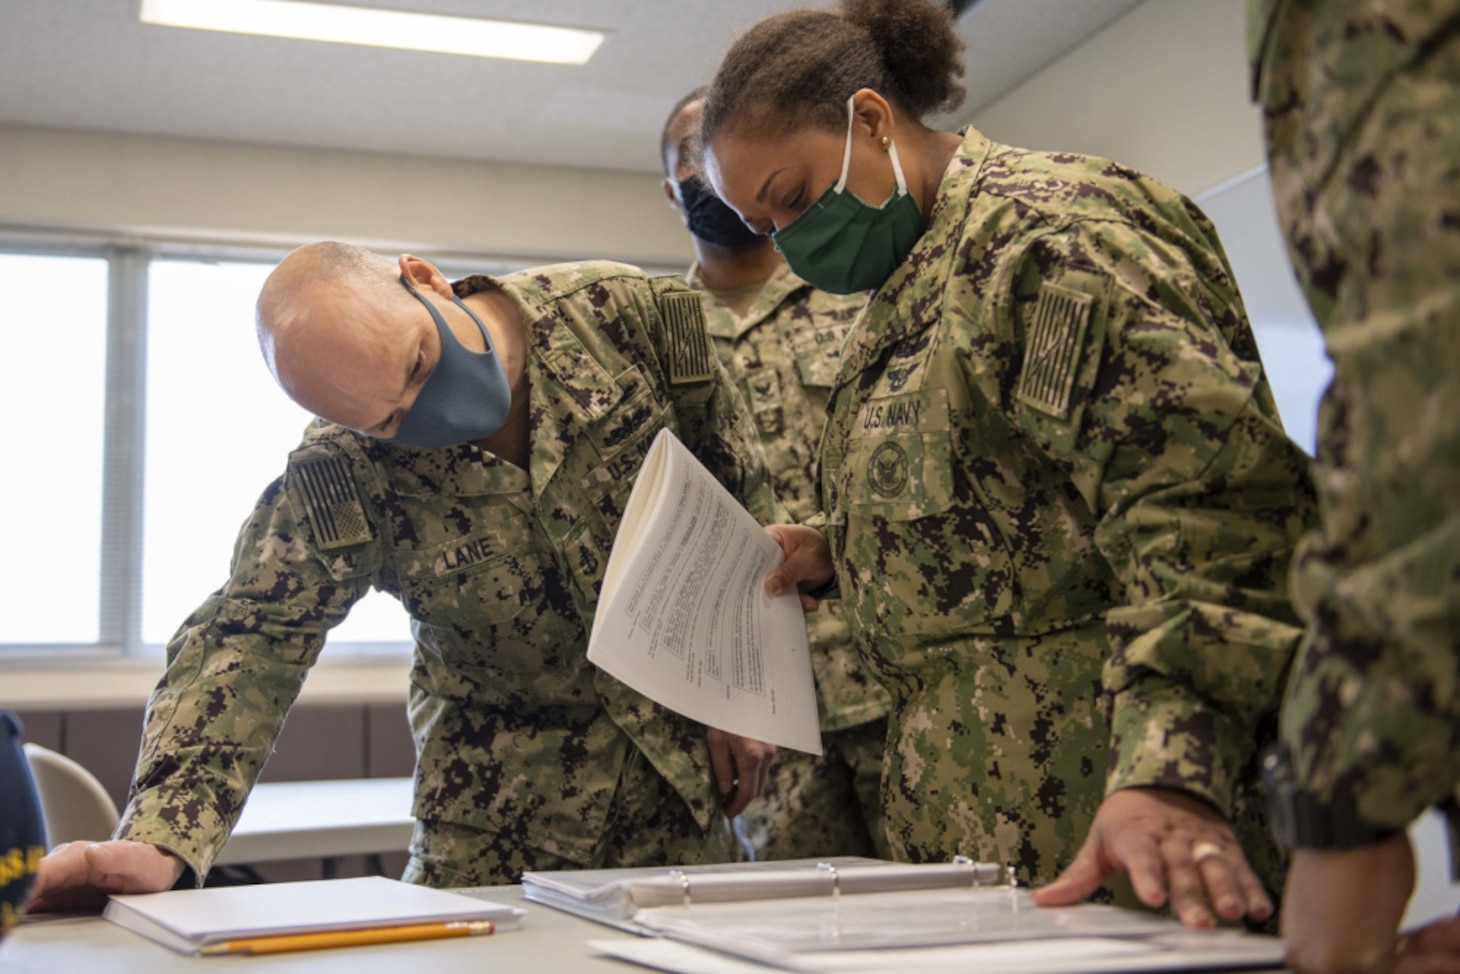 Senior Chief Navy Counselor Scott Lane, left, from Malvern, Ohio and Chief Navy Counselor Anita Felix, right, from Houston, both assigned to the forward-deployed amphibious assault ship USS America (LHA 6), proctor the Armed Services Vocational Aptitude Battery in the Fleet Activities Sasebo Community Educational Center. America, lead ship of the America Amphibious Ready Group, along with the 31st Marine Expeditionary Unit, is operating in the U.S. 7th Fleet area of responsibility to enhance interoperability with allies and partners and serve as a ready response force to defend peace and stability in the Indo-Pacific region